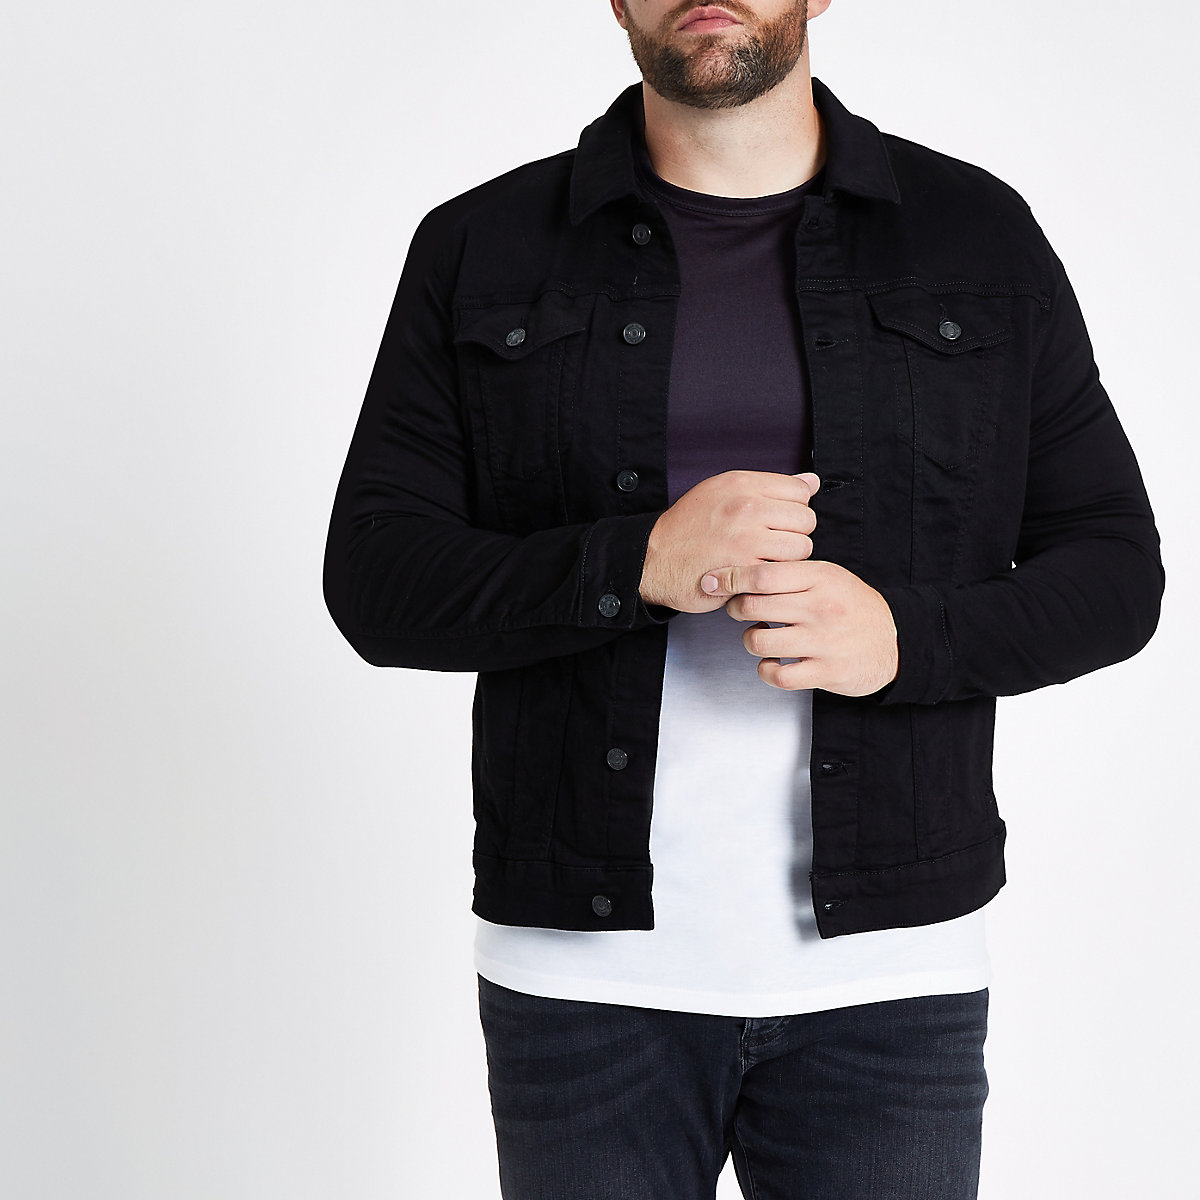 f90bb977353 Big and Tall black denim jacket - Jackets - Coats   Jackets - men